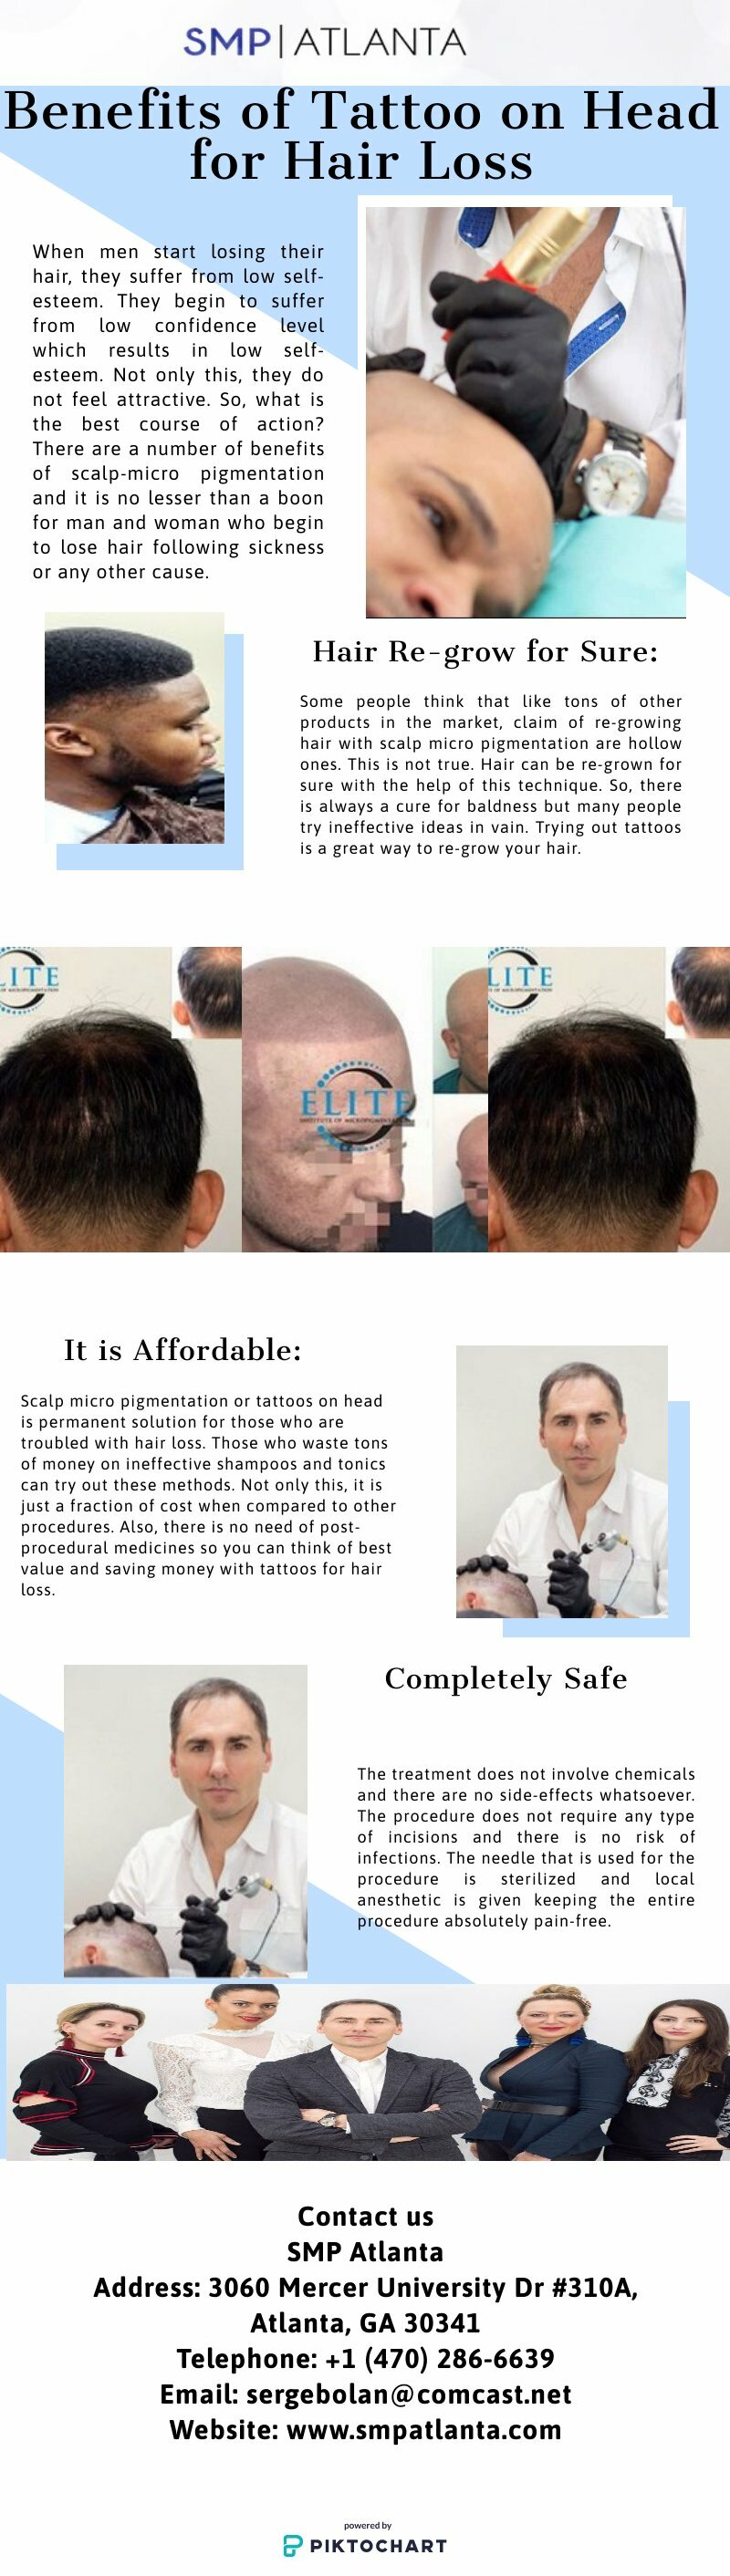 Benefits of Tattoo on Head for Hair Loss